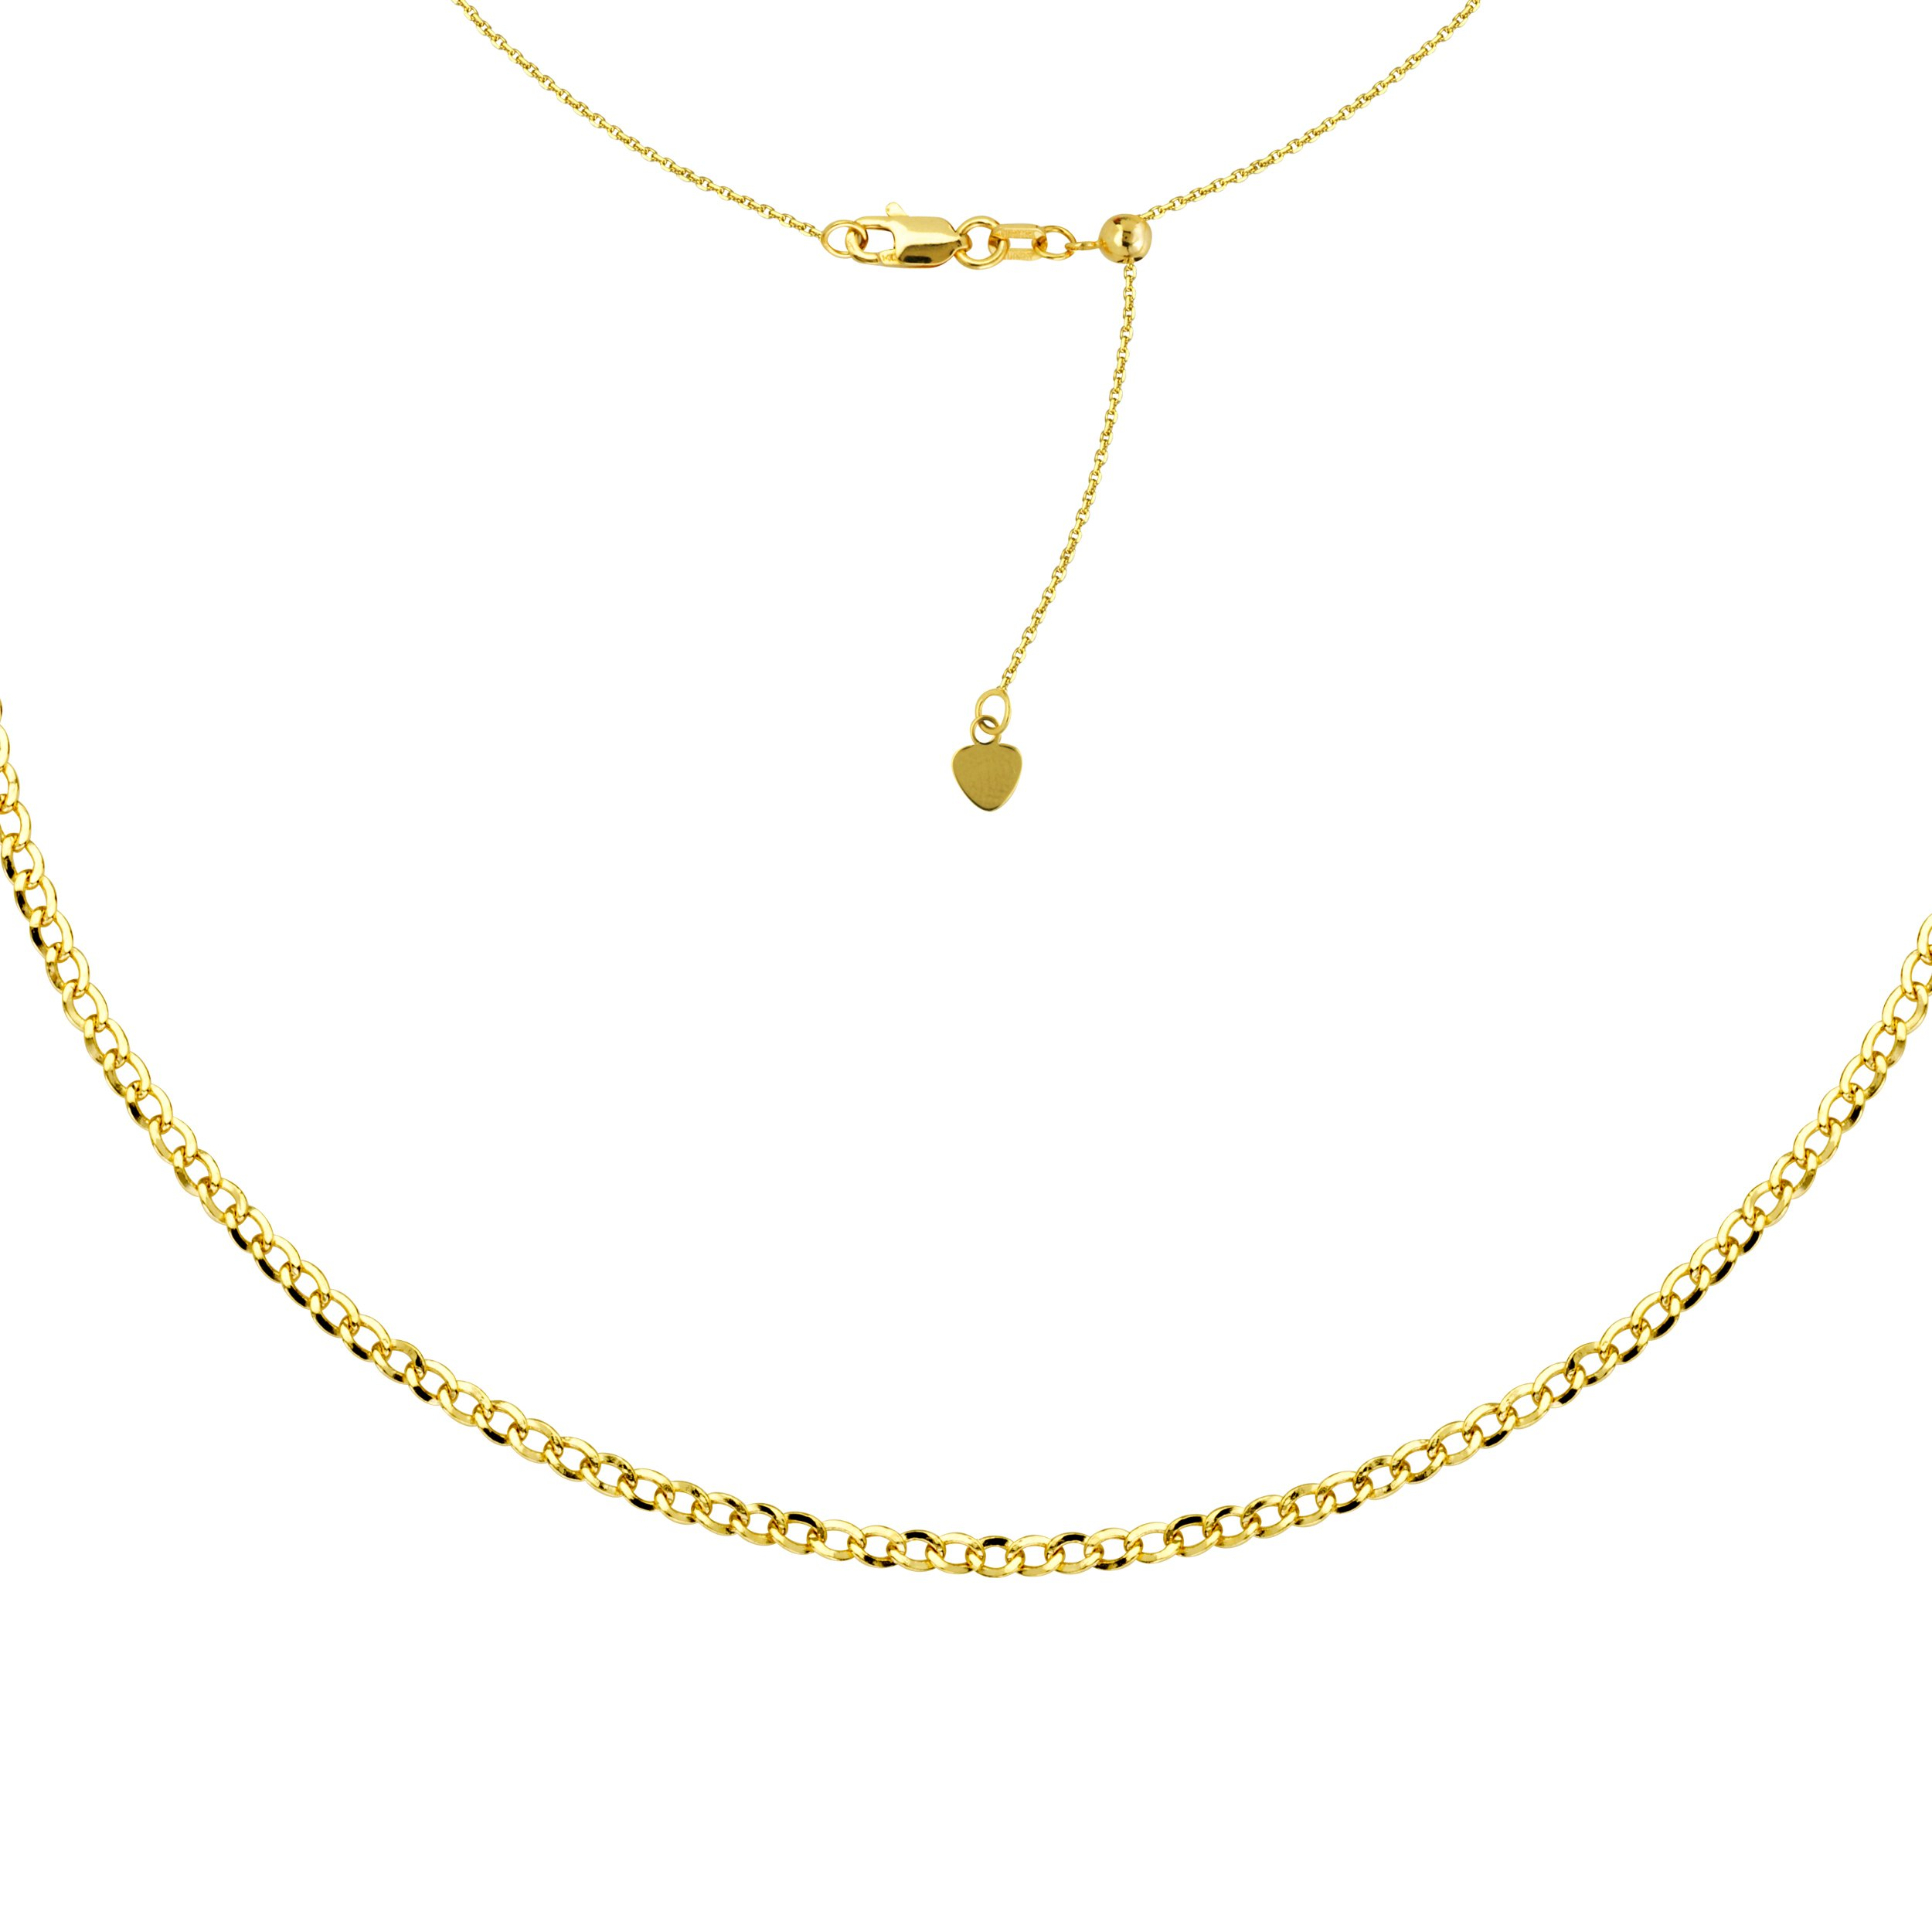 Choker Necklace Curb Style Chain 14k Yellow Gold - Adjustable